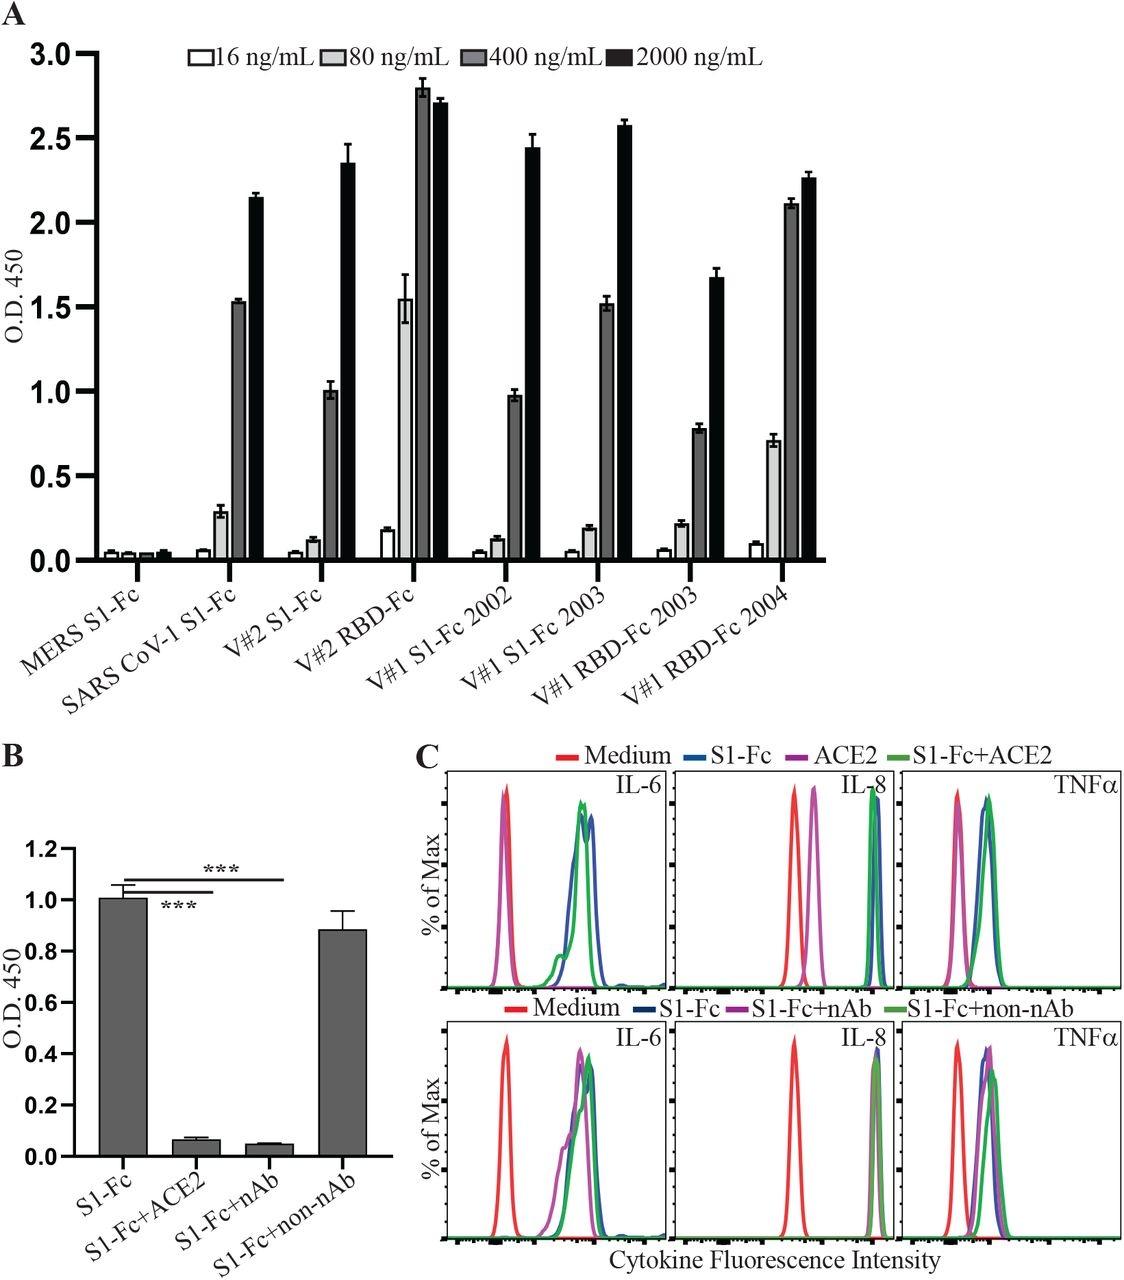 SARS CoV-2 spike protein-induced cytokine production is independent of its binding to ACE2. ( A ) The binding activities of coronaviral spike Fc fusion proteins to ACE2 were measured using an ELISA. The binding activities of 16, 80, 400 and 2000 ng/mL of the indicated proteins were presented as absorbance at 450 nm (O.D. 450). ( B ) Inhibition of S1-Fc binding to ACE2 by soluble ACE2 or a neutralizing anti-S1 antibody. 400 ng/mL of S1-Fc was preincubated with or without 2 μg/mL of soluble ACE2, 1 μg/mL of neutralizing (nAb) or non-neutralizing (non-nAb) anti-S1 antibody before incubation with plate-bound ACE2. Statistical analyses were performed using a two-tailed, Student's T-test. *** depicts p